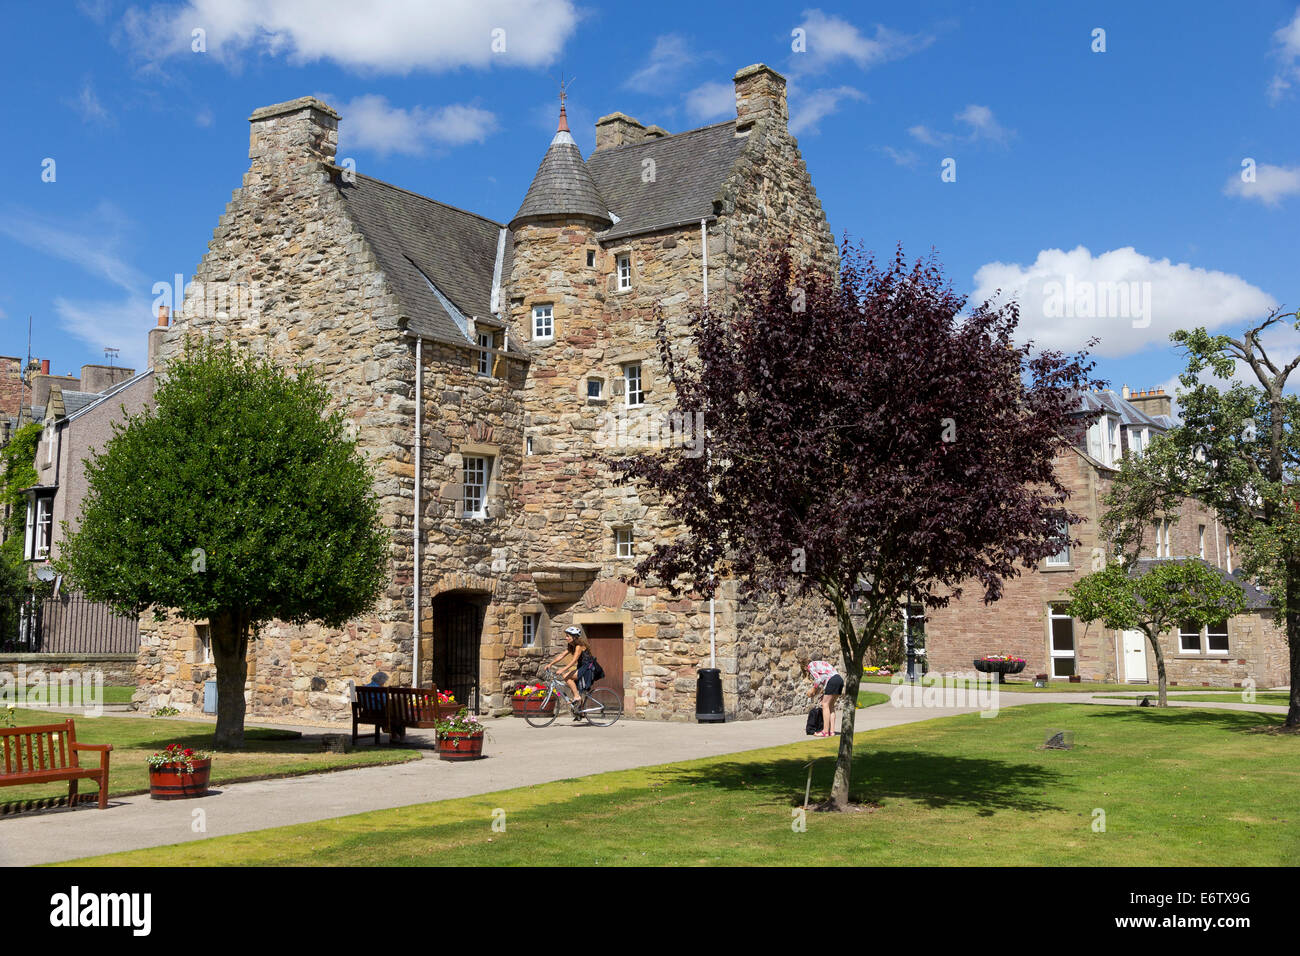 Mary Queen of Scots visitor centre, Jedburgh,  Roxburghshire, Scottish Borders, Scotland. Queen Mary stayed in this - Stock Image